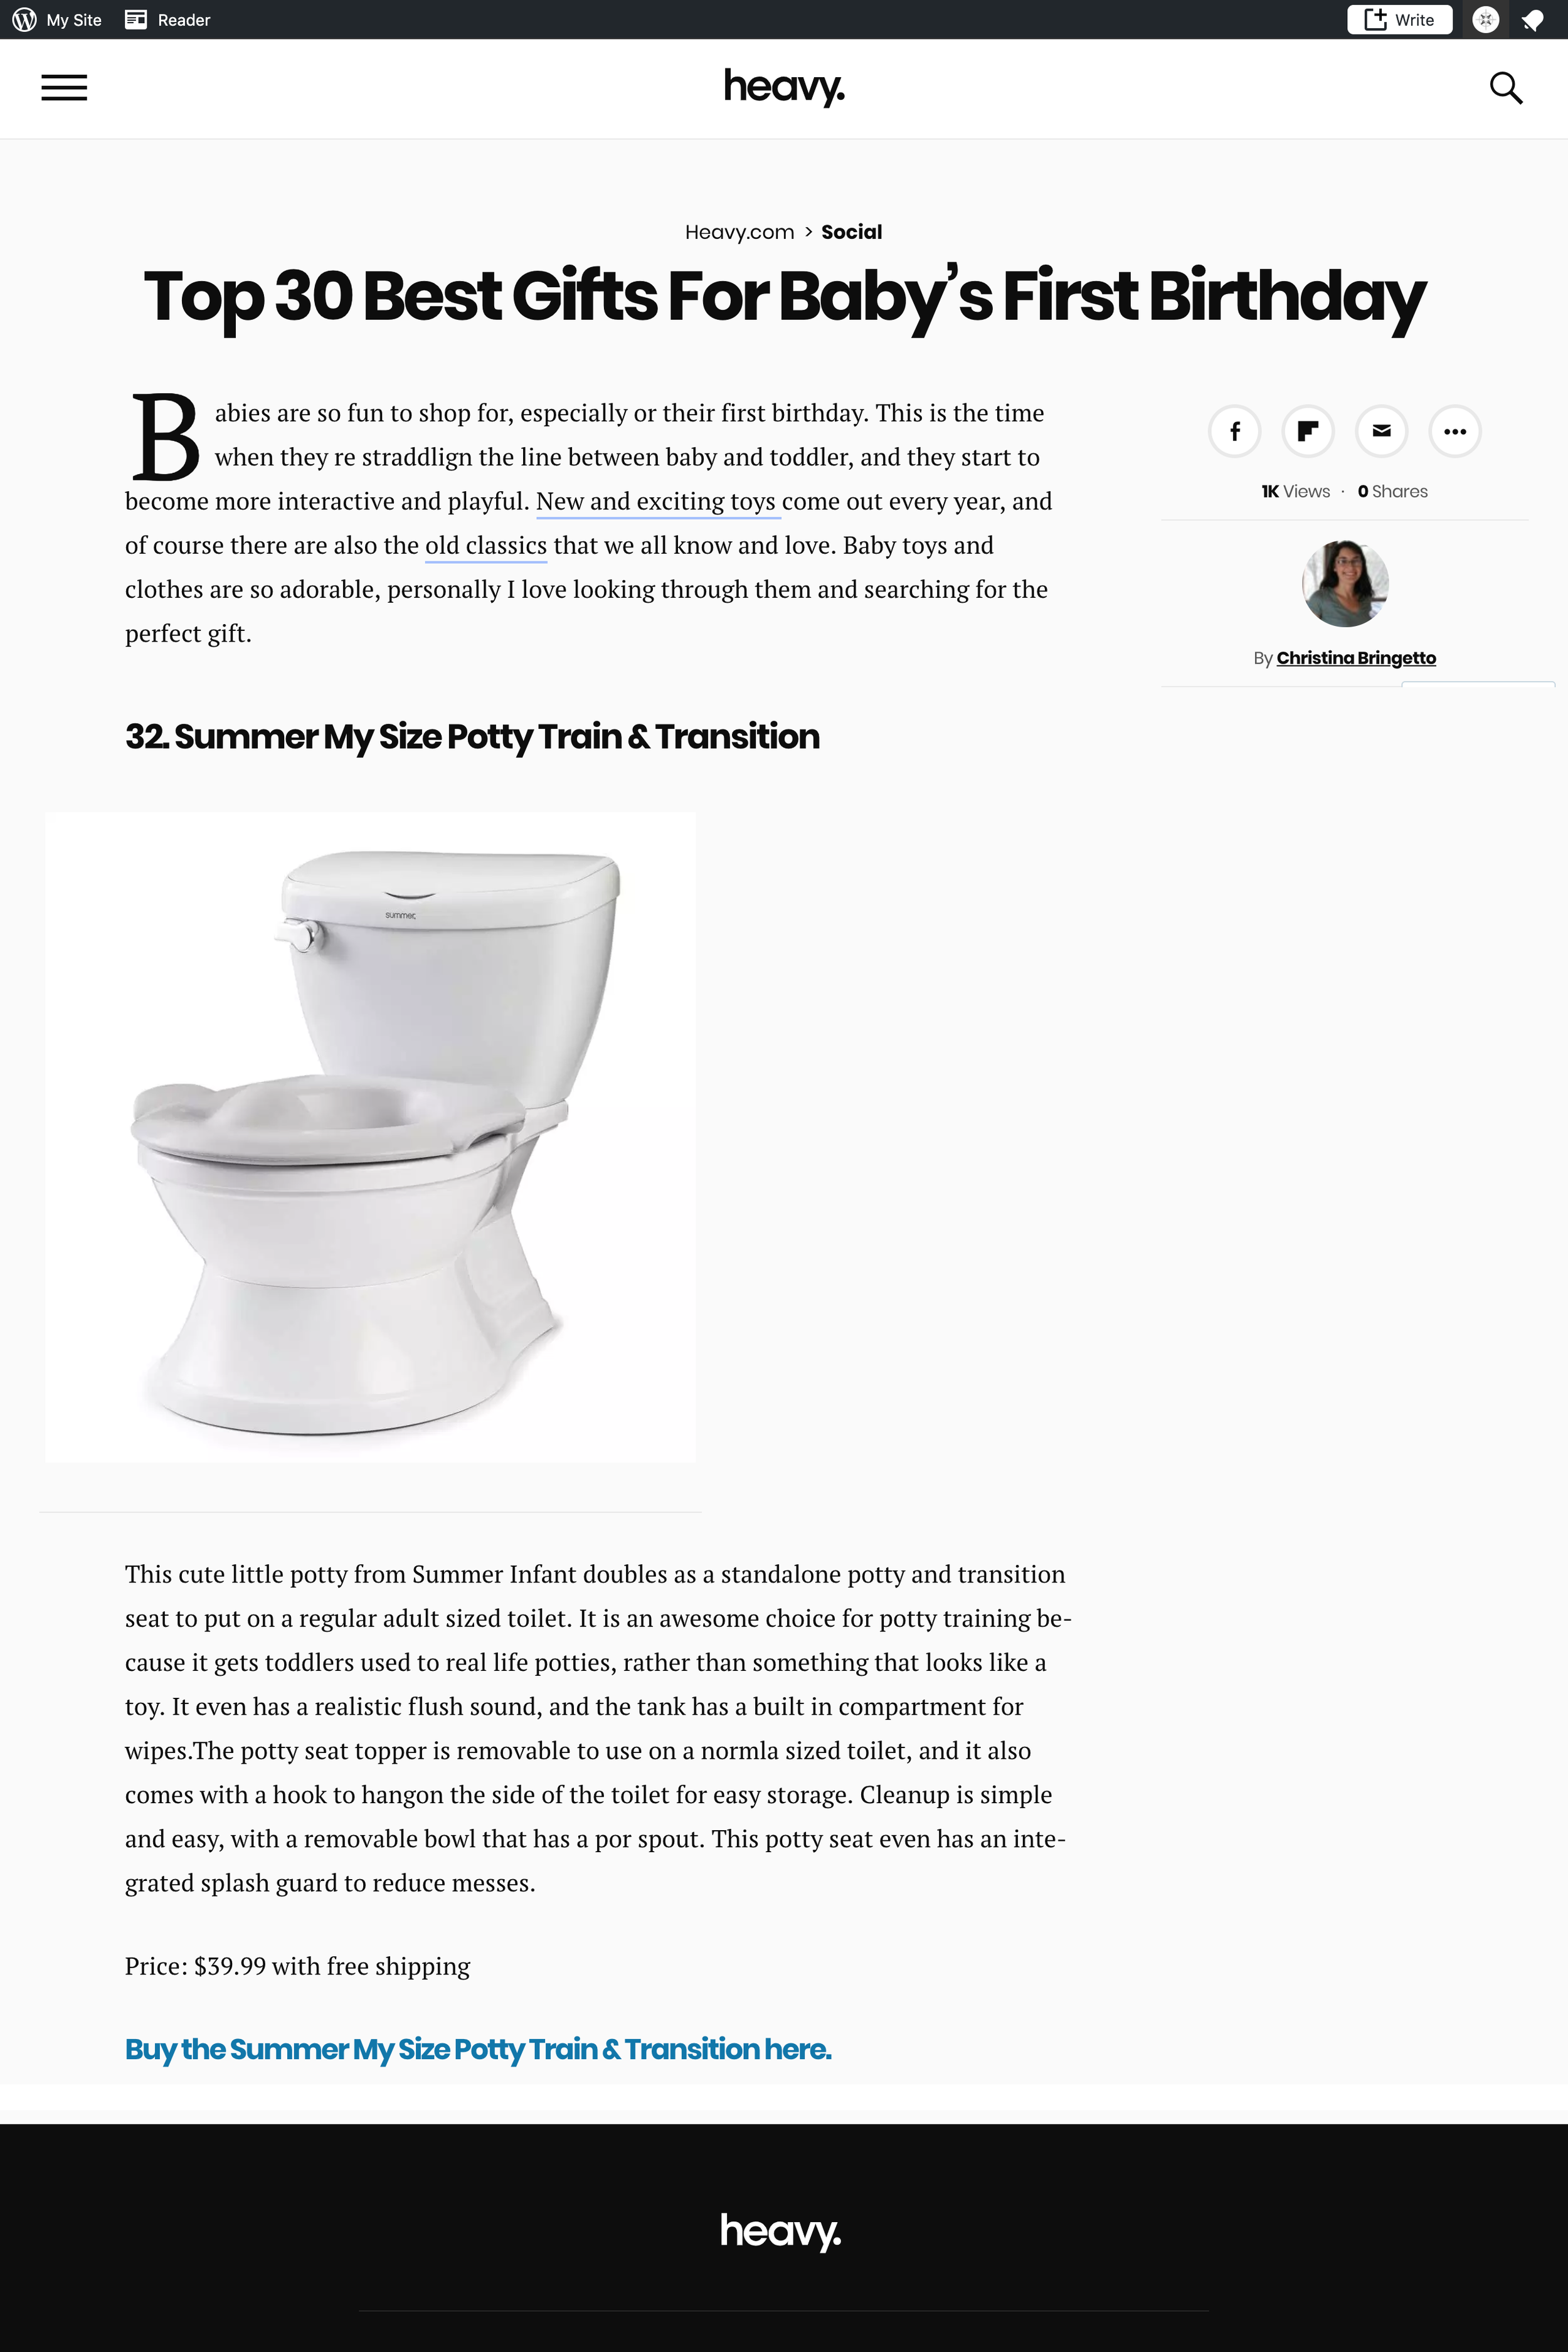 2019.05.00_Heavy_Summer My Size Potty Train & Transition_Roundup 1 of 5_cropped 2x3.png